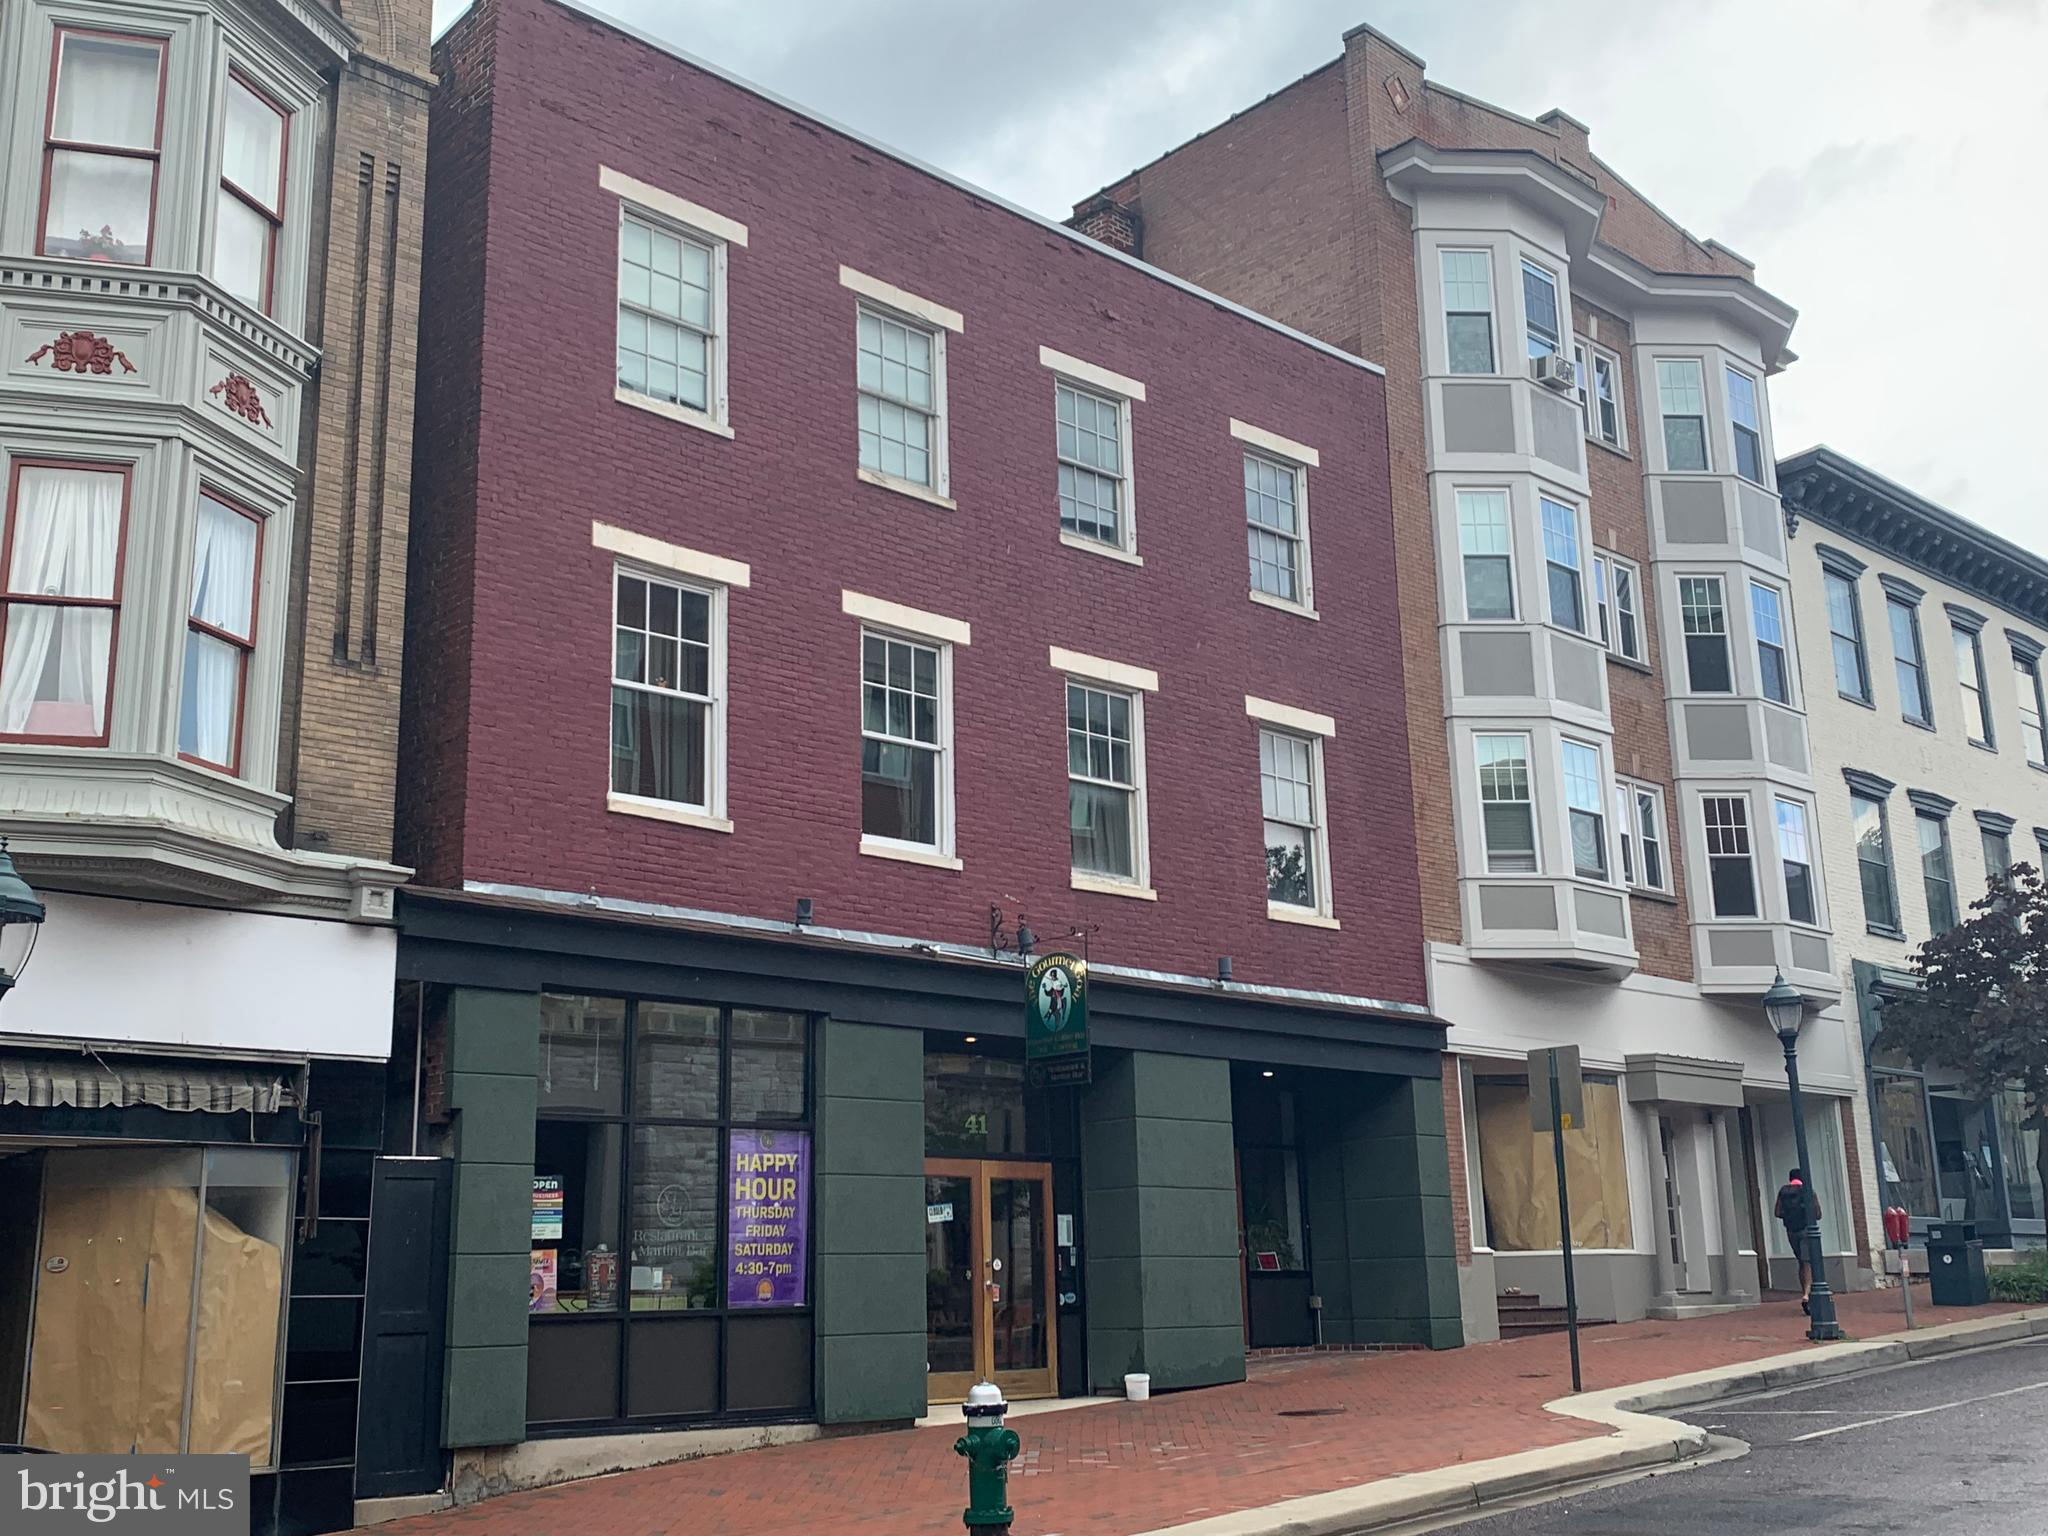 Fantastic opportunity, 4,000 ft~ fully equipped and turn-key restaurant,  ~Gourmet Goat ~  business plus real estate!  Owners are looking to retire and pass this well stablished Restaurant-Bar on to a new owner, in the heart of downtown Hagerstown Arts & Entertainment District, just few steps from the, New University of Maryland, District Court, Barbara Ingram School for the Arts and Anchoring the district is the New Historic Maryland Theatre, art galleries, wonderful restaurants, museums, education centers, retail stores, and more, all at your doorstep. Restaurant is tastefully decorated throughout , You must see it to appreciate the cleanliness and condition of all equipment, in addition, the property offers an upstairs 3,240 ft~  pristine living quarters comprised by three bedrooms and has two full baths and one 1/2 bath. Private parking is available in the rear of the building for approximately 15 vehicles, public parking garage a couple doors down from the building. Potential Buyers must be Pre-qualify on financial ability to purchase and must sign a NDA before any financial information is provided.